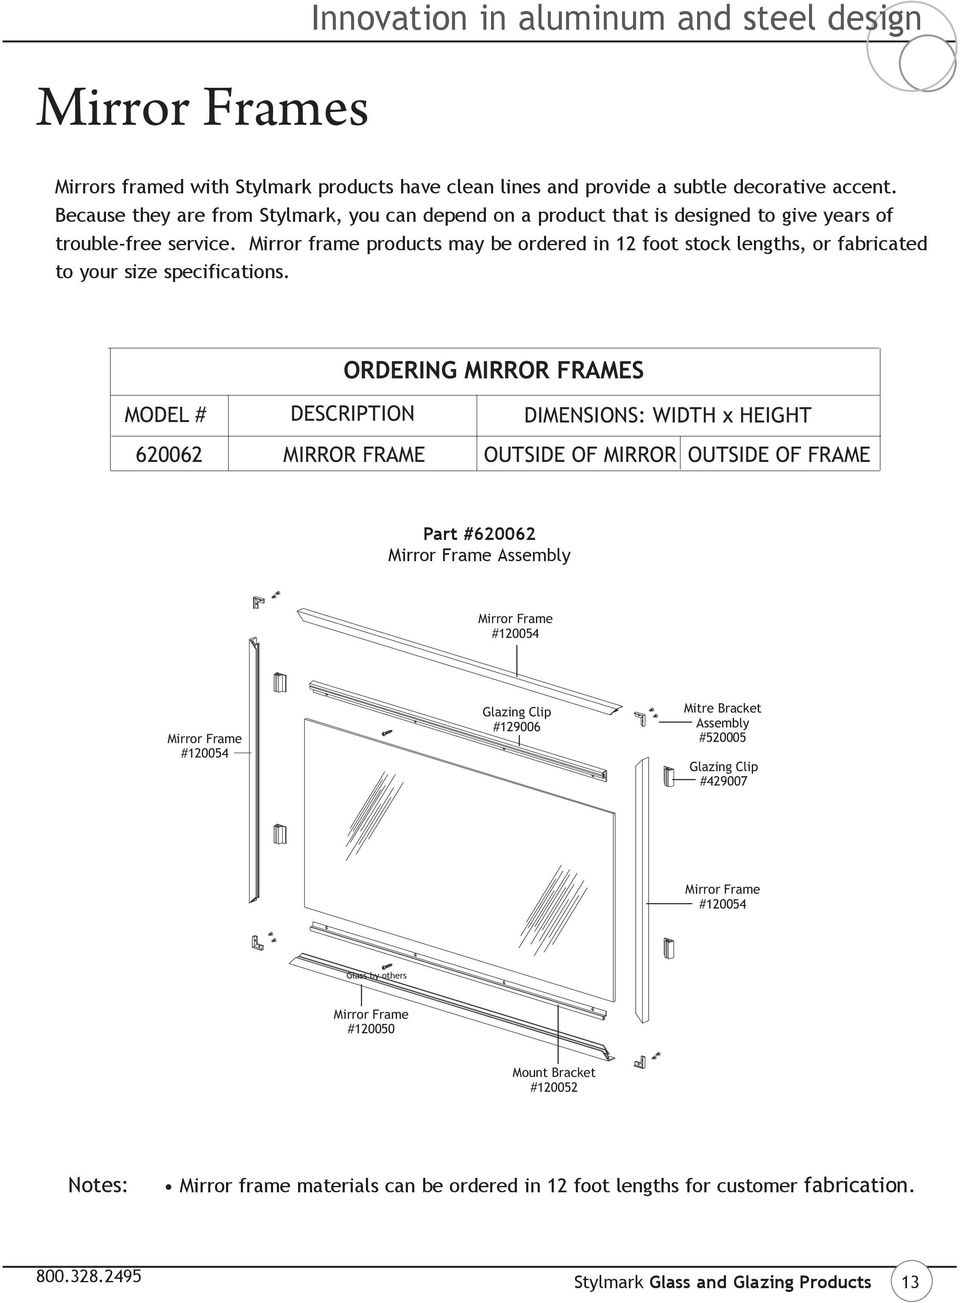 Mirror frame products may be ordered in 12 foot stock lengths, or fabricated to your size specifications.